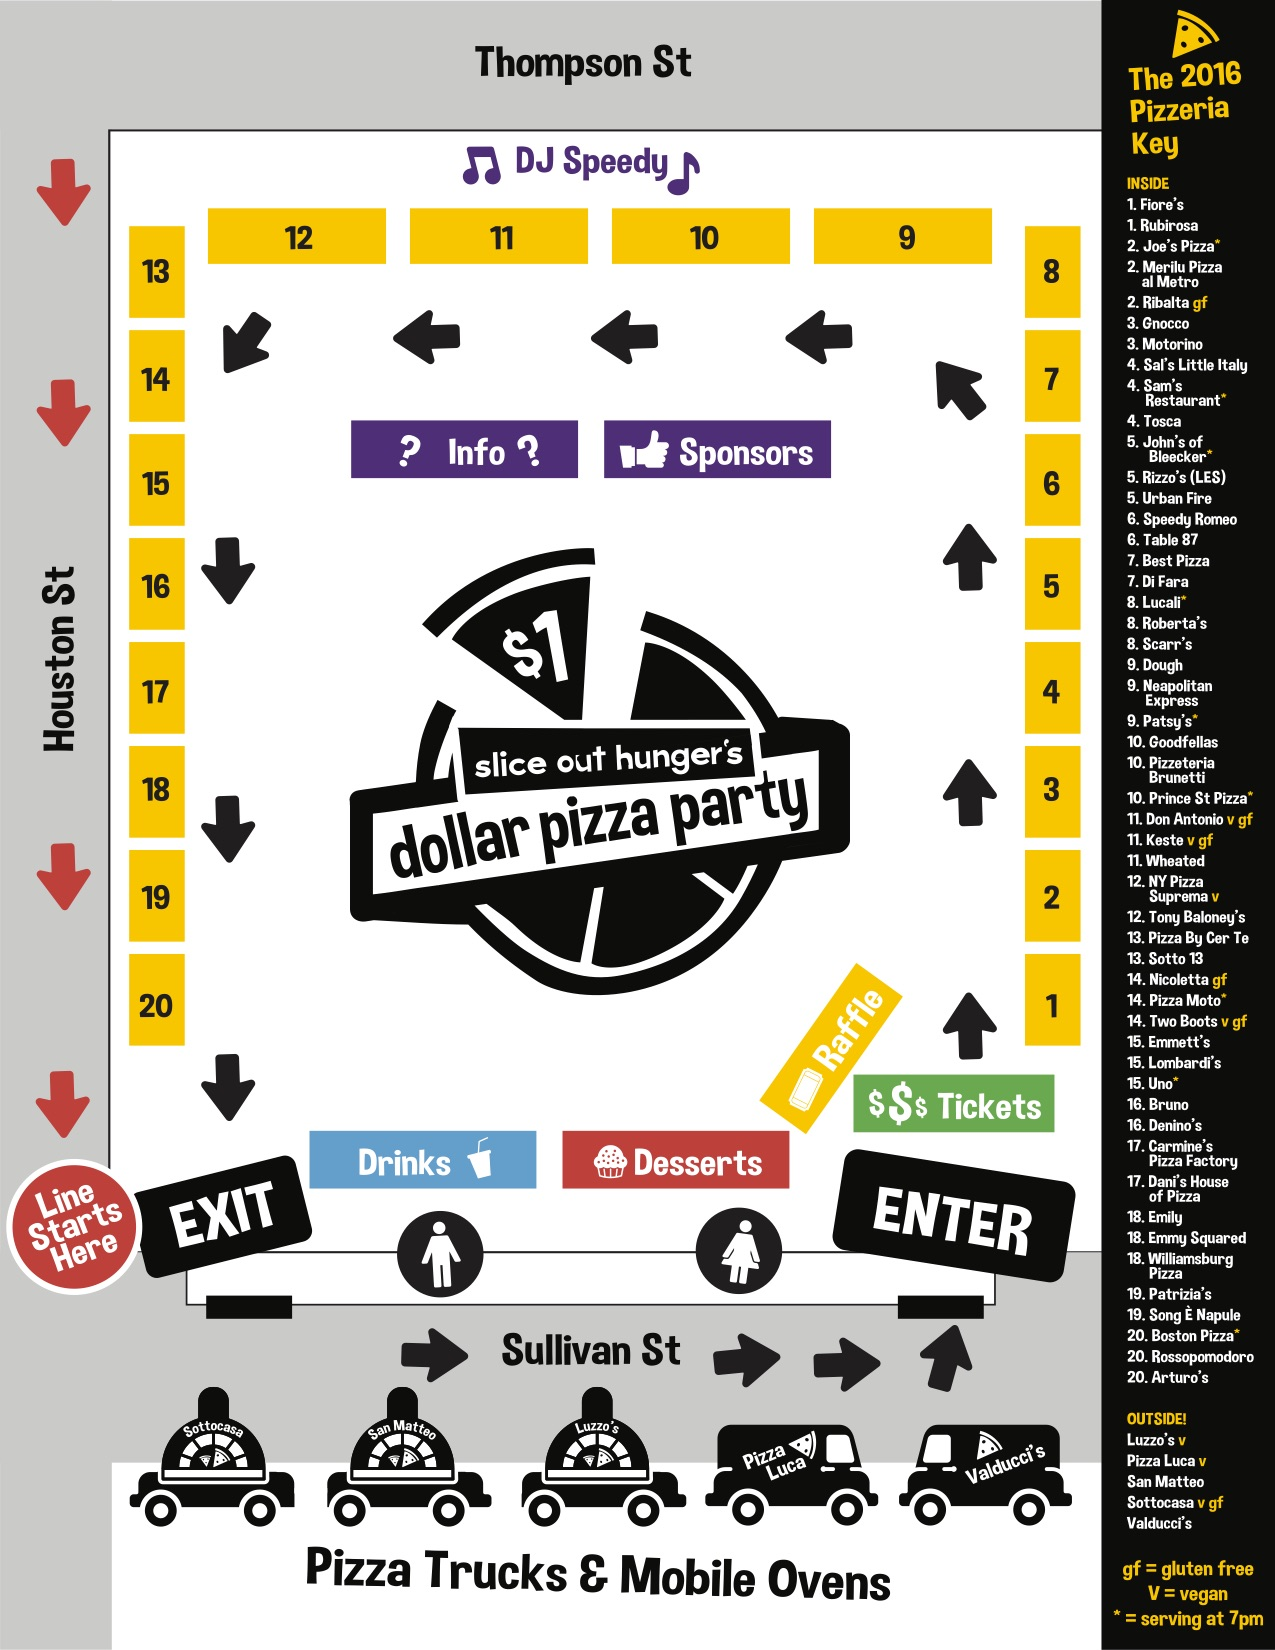 Enlarge this map to plan your fantasy pie! Your best bet is to save the larger image so you can read the pizzeria names.